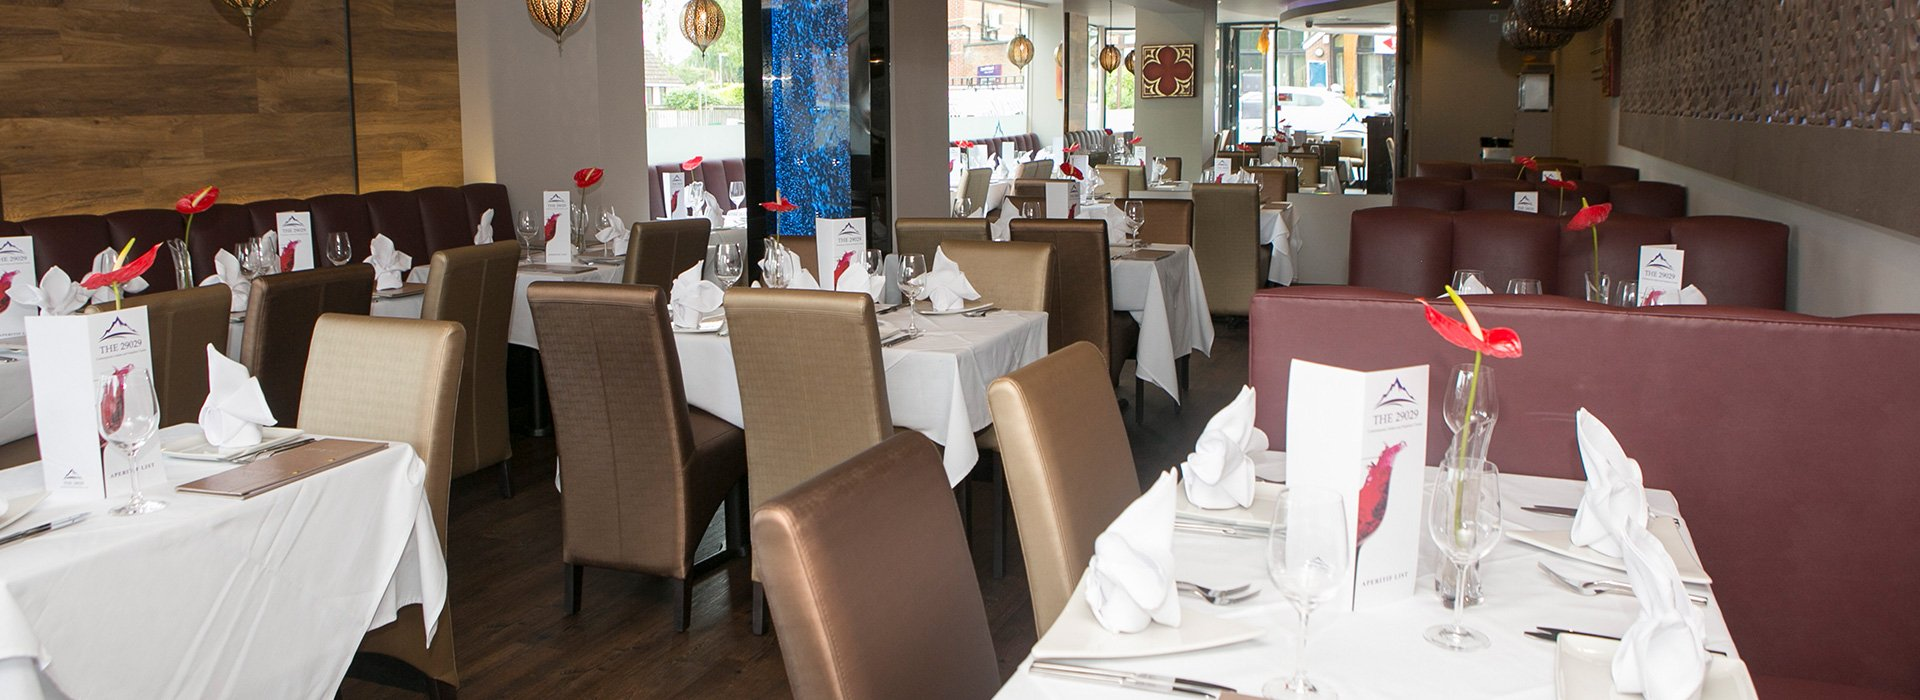 Indian and Nepalese Cuisine - The 29029 Restaurant